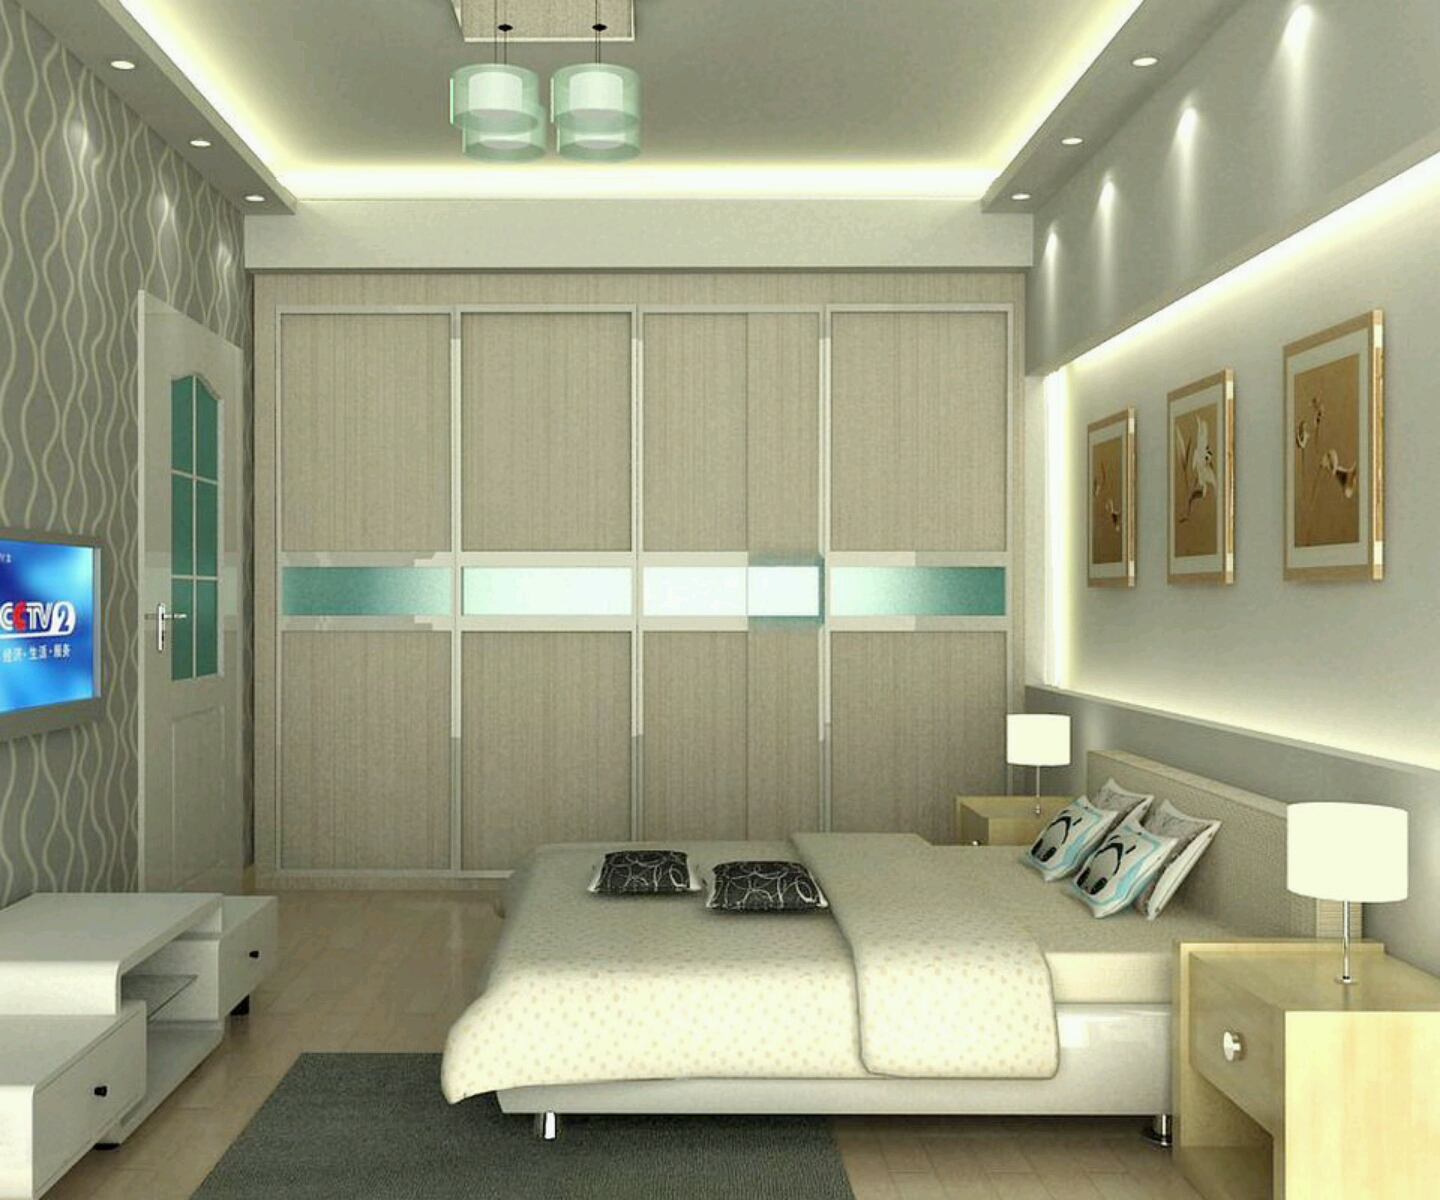 Bedrooms Designs. Modern homes bedrooms designs best ideas  Diy